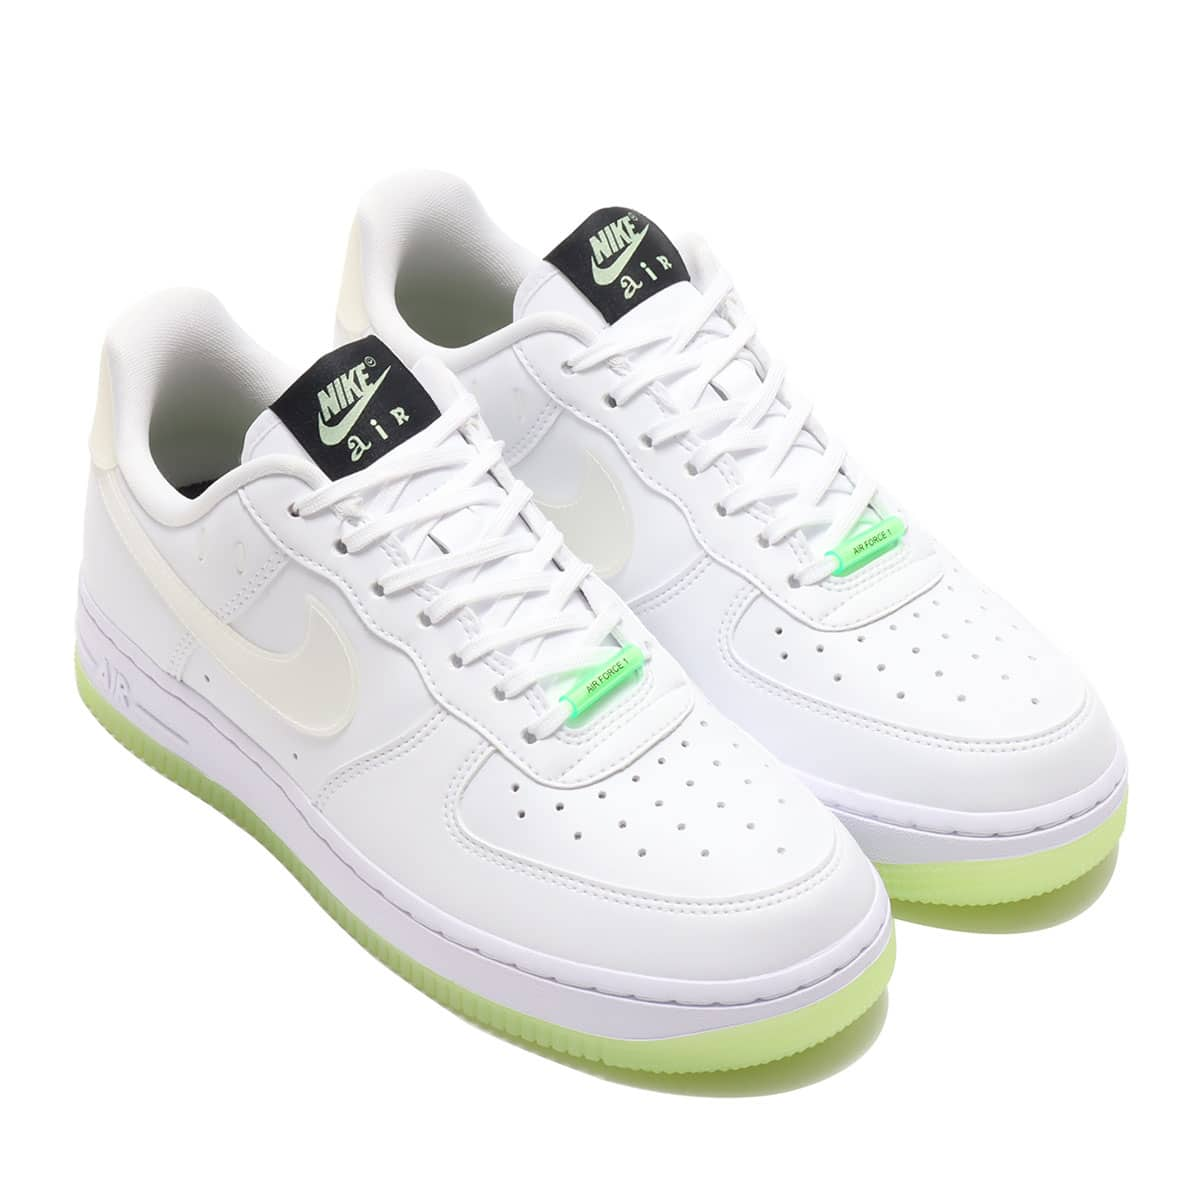 NIKE W AIR FORCE 1 '07 LX WHITE/BARELY VOLT-BLACK-RAGE GREEN 21SP-I_photo_large